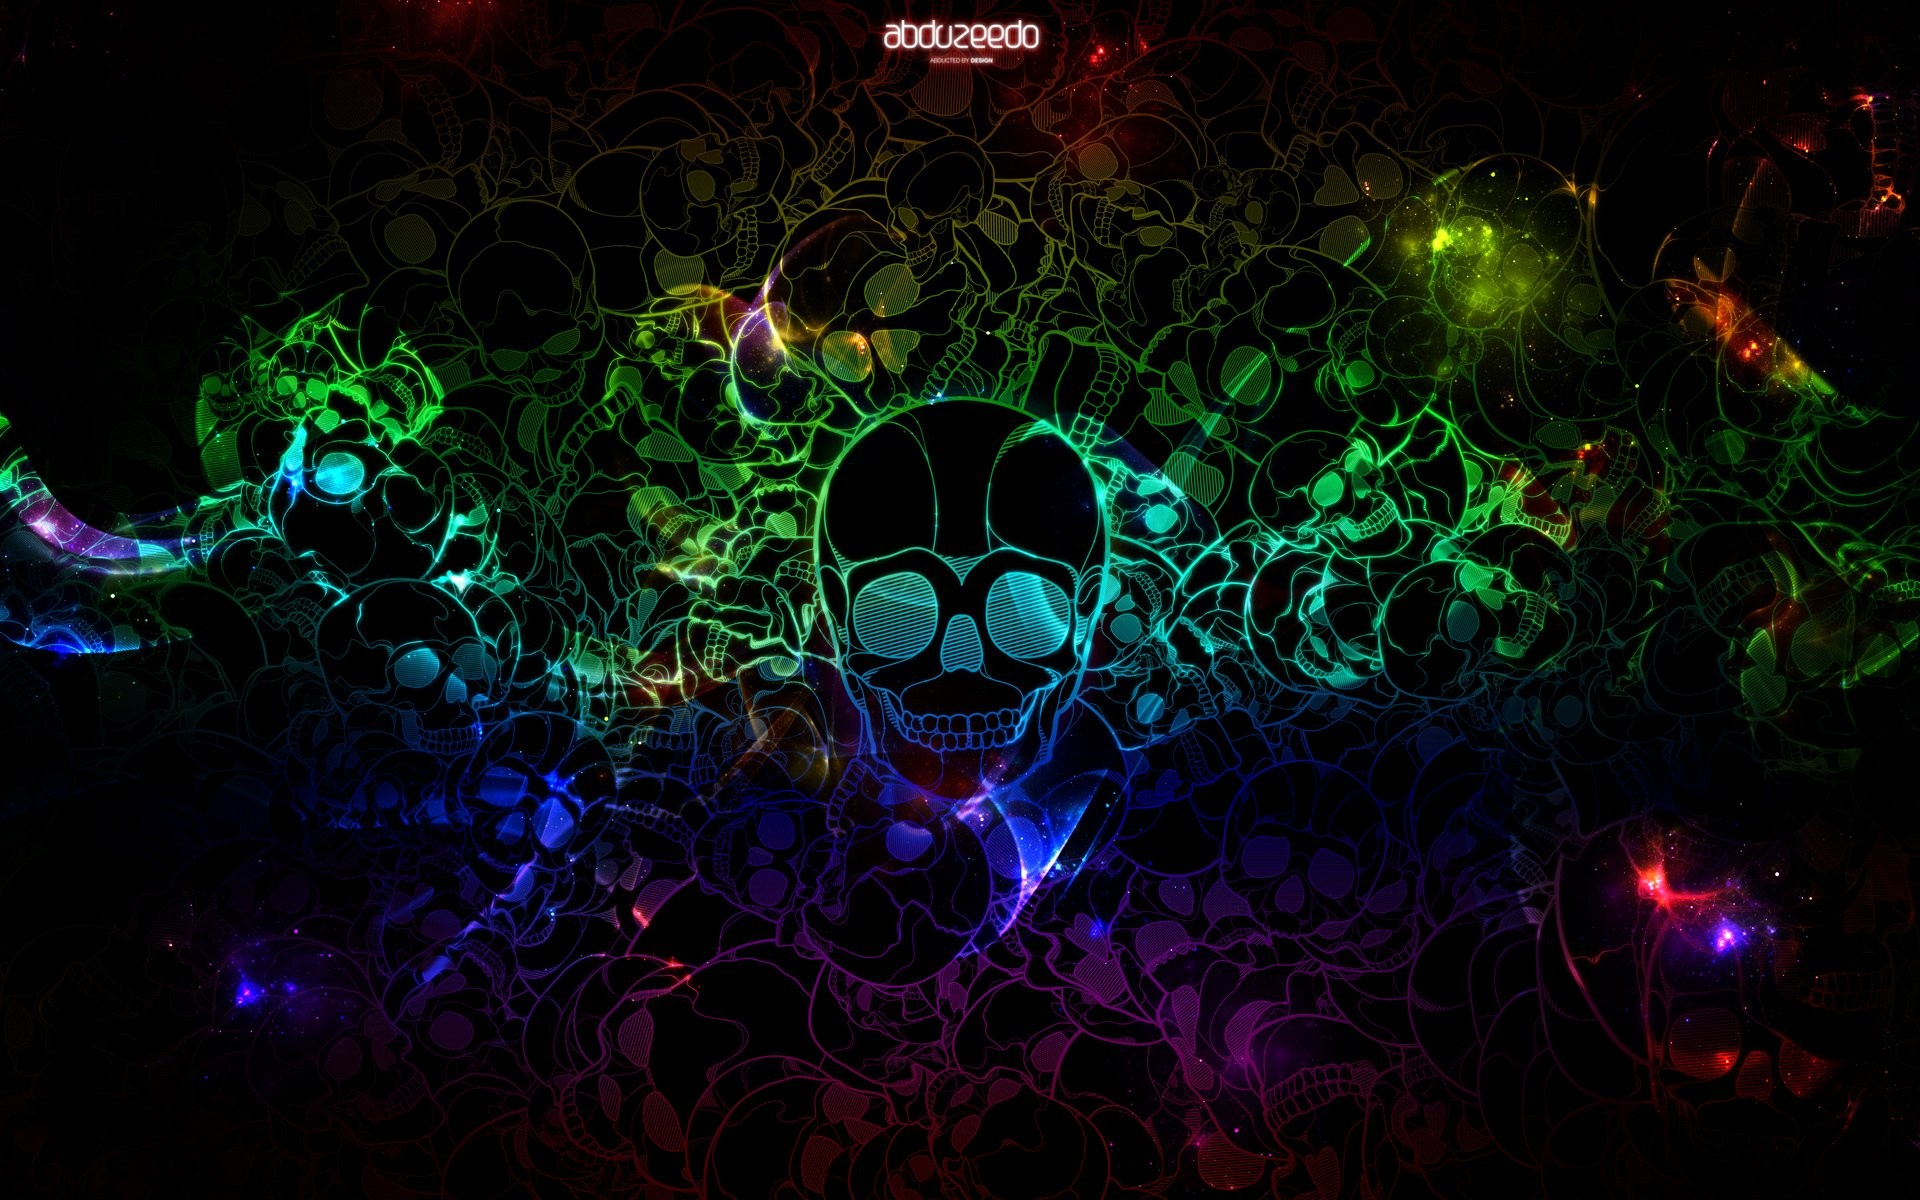 Description Skull Wallpapers is a hi res Wallpaper for pc